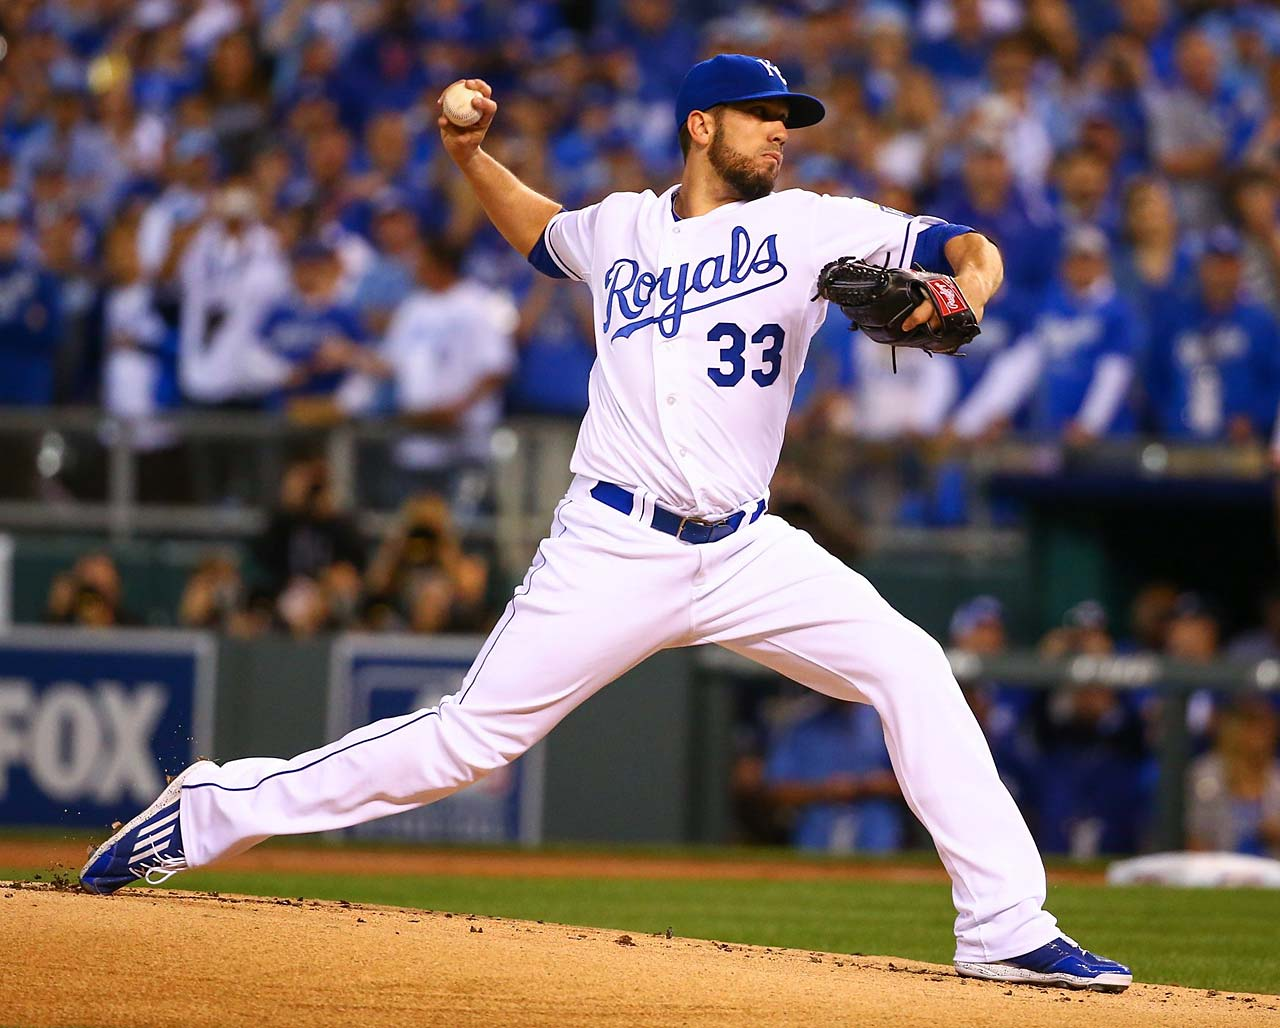 James Shields was lifted after pitching to three batters in the fourth inning. He yielded five earned runs and struck out only one in his shortest outing since 2008.